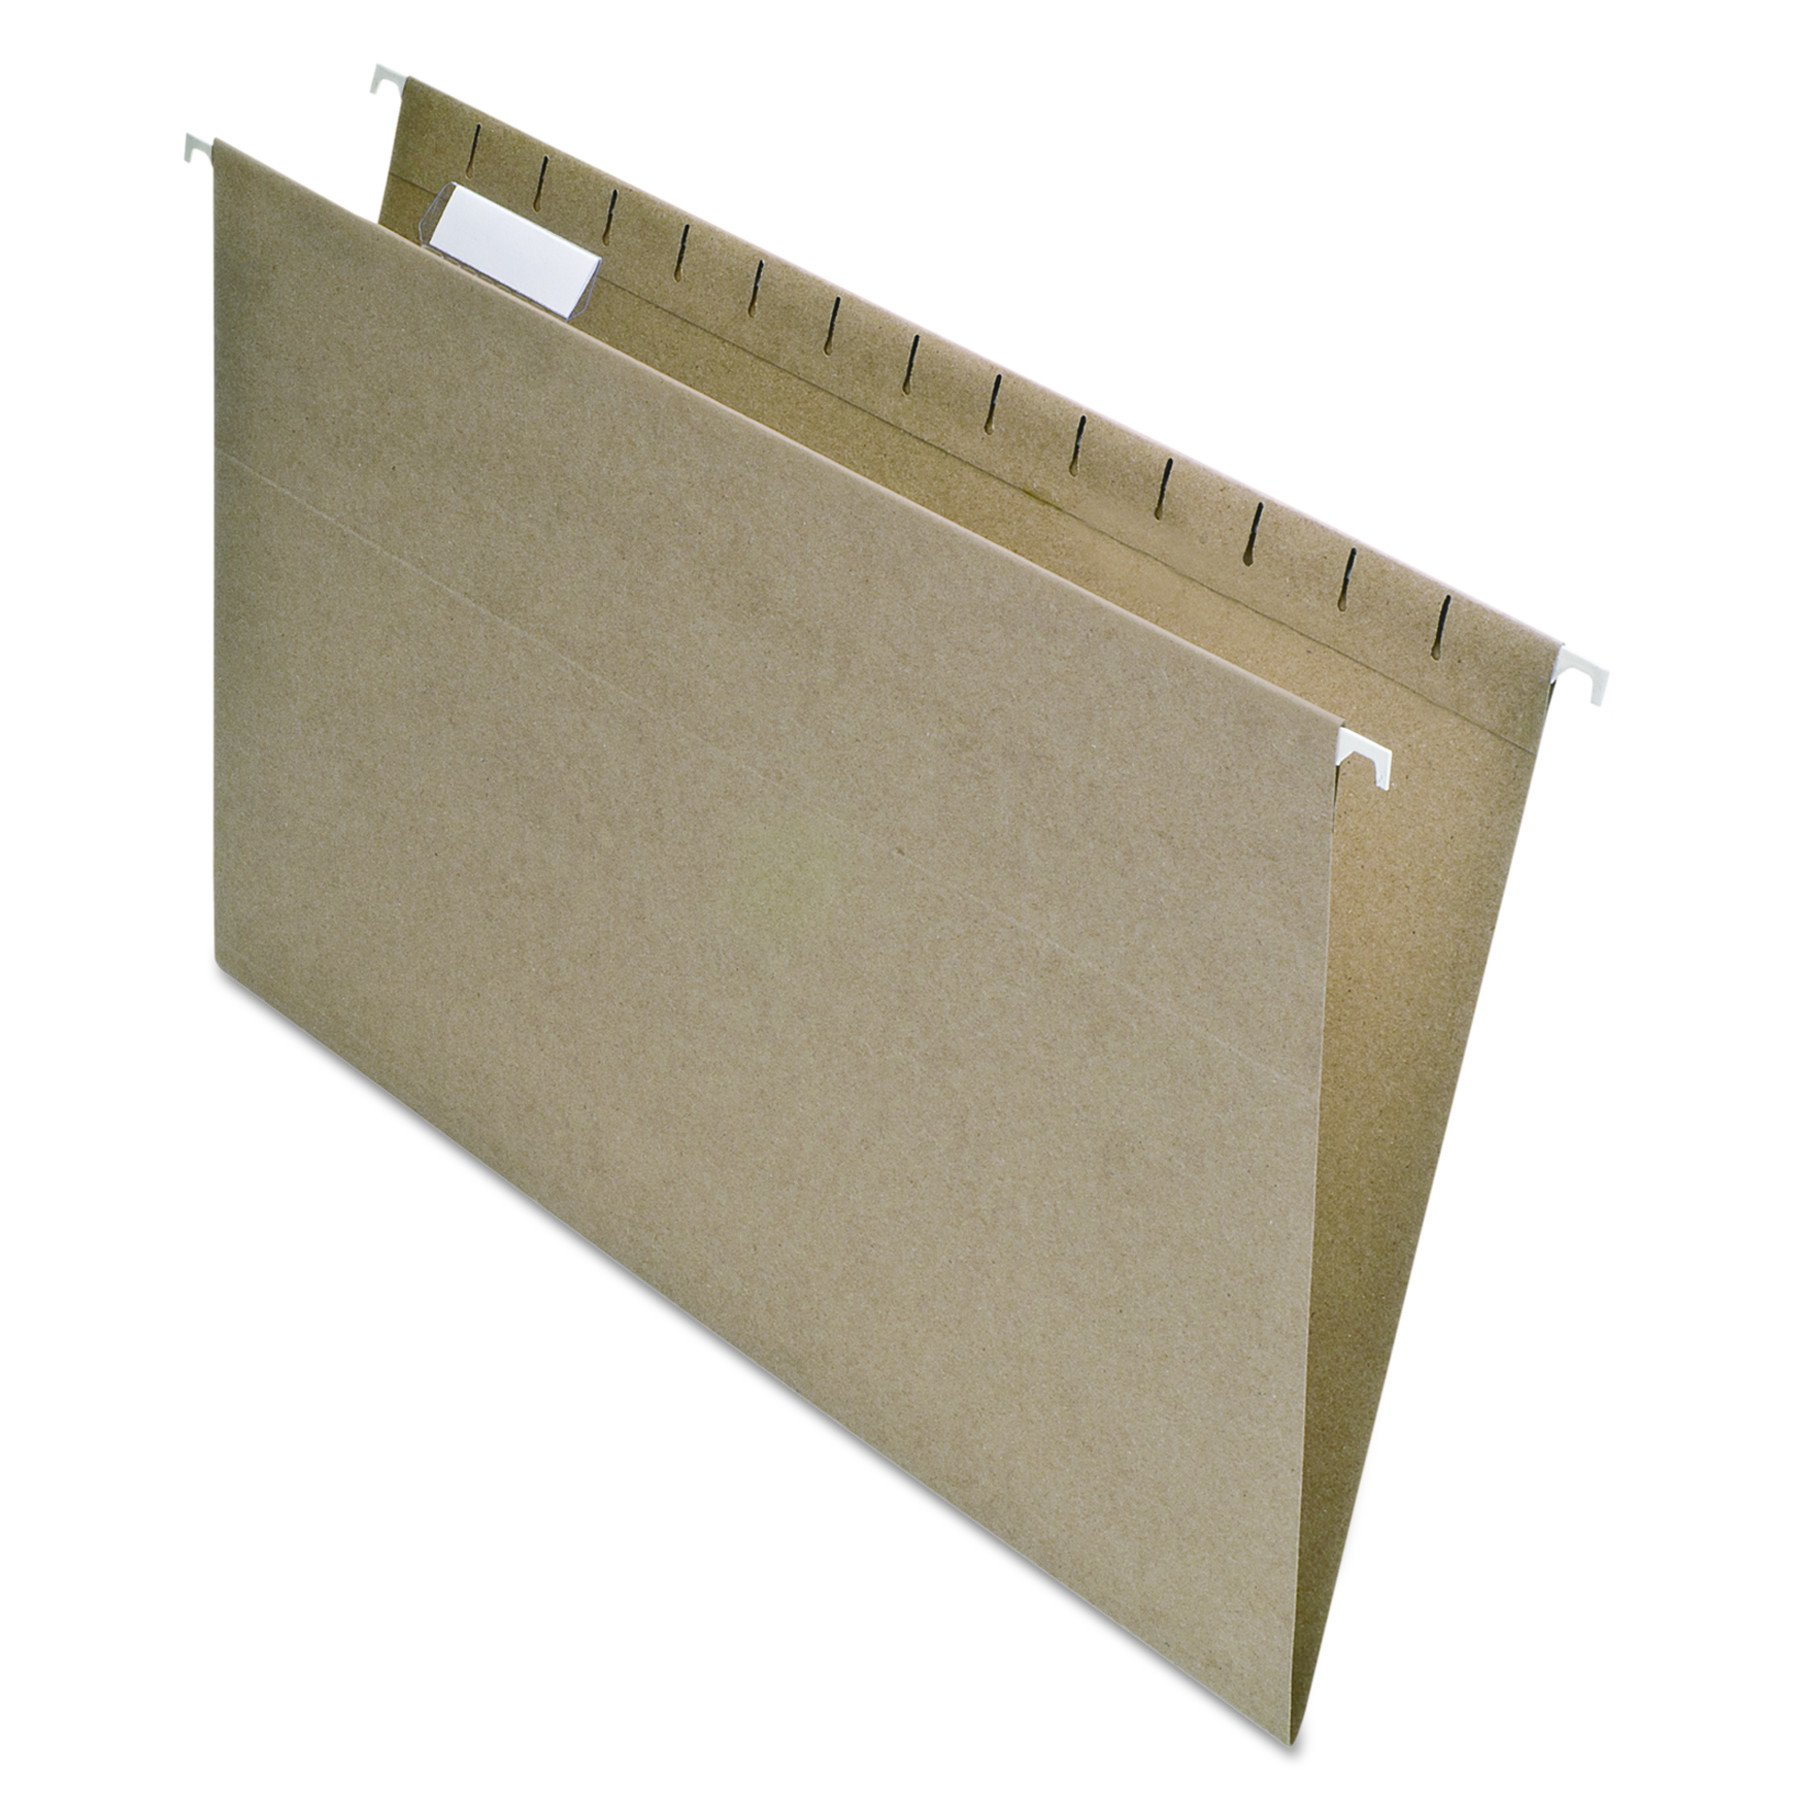 Pendaflex Earthwise 100% Recycled Hanging File